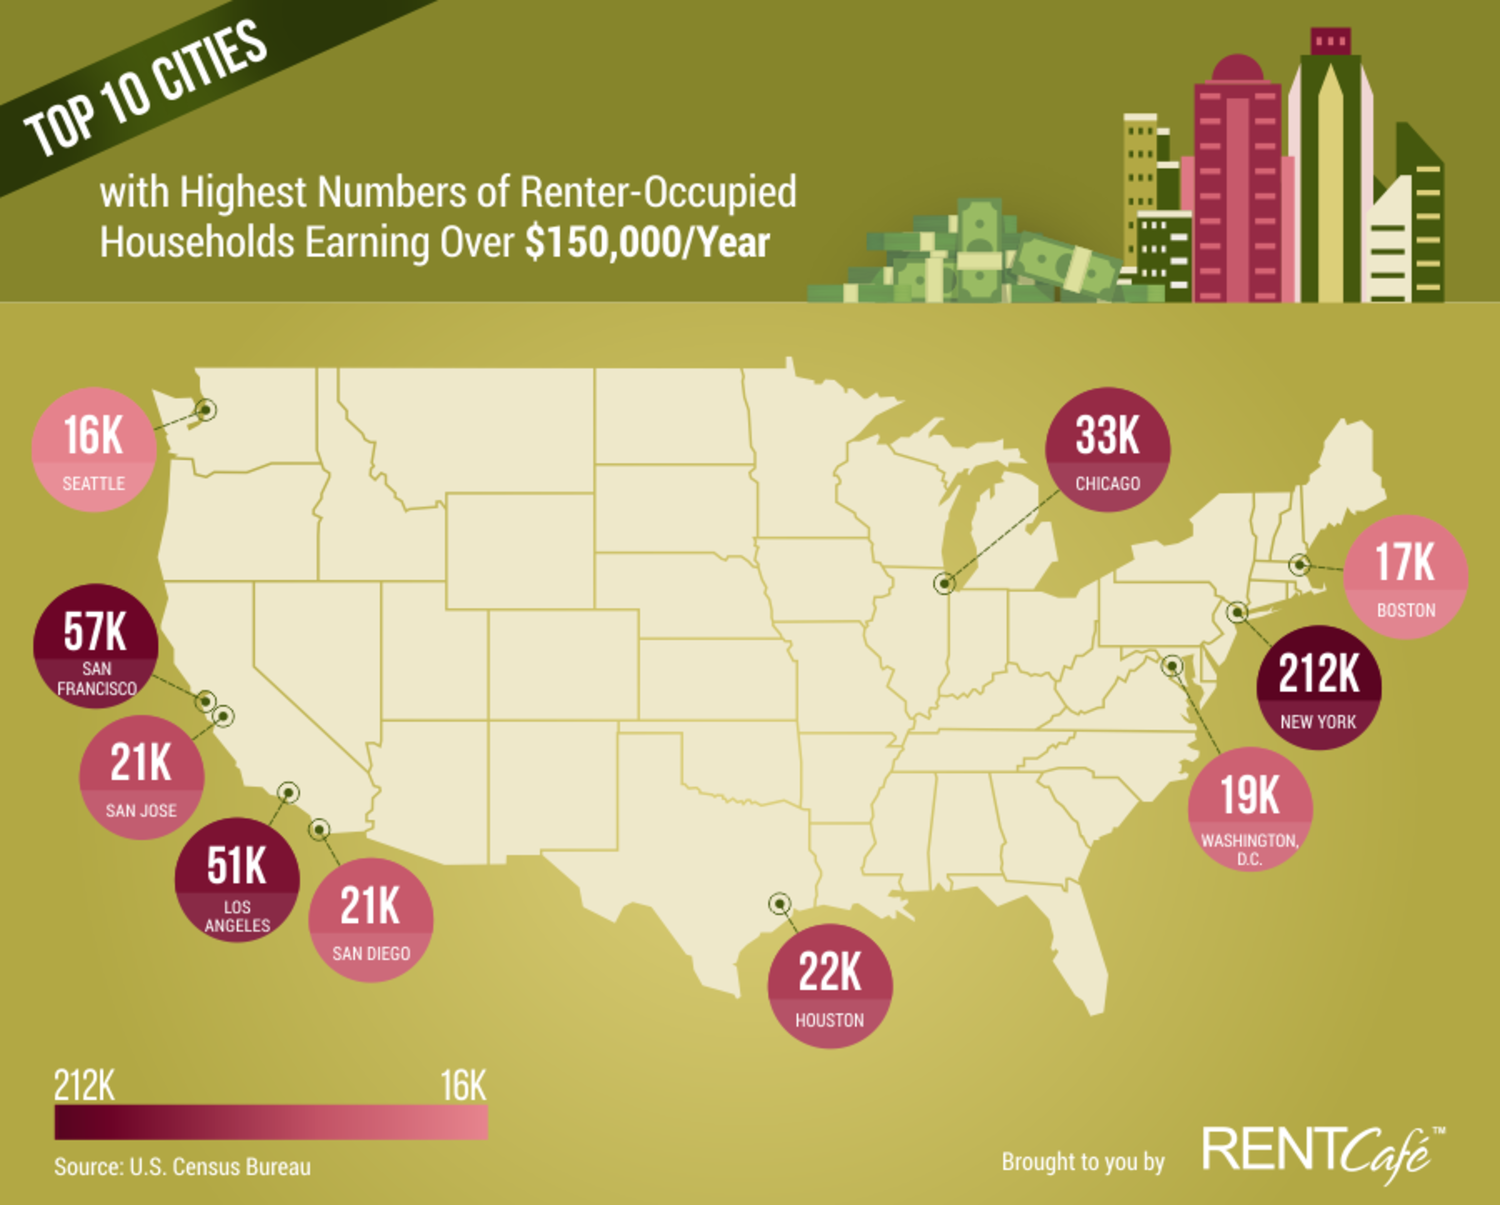 Top 10 Cities with Highest Number of Renter-Occupied Households Earning Over $150,000/Year